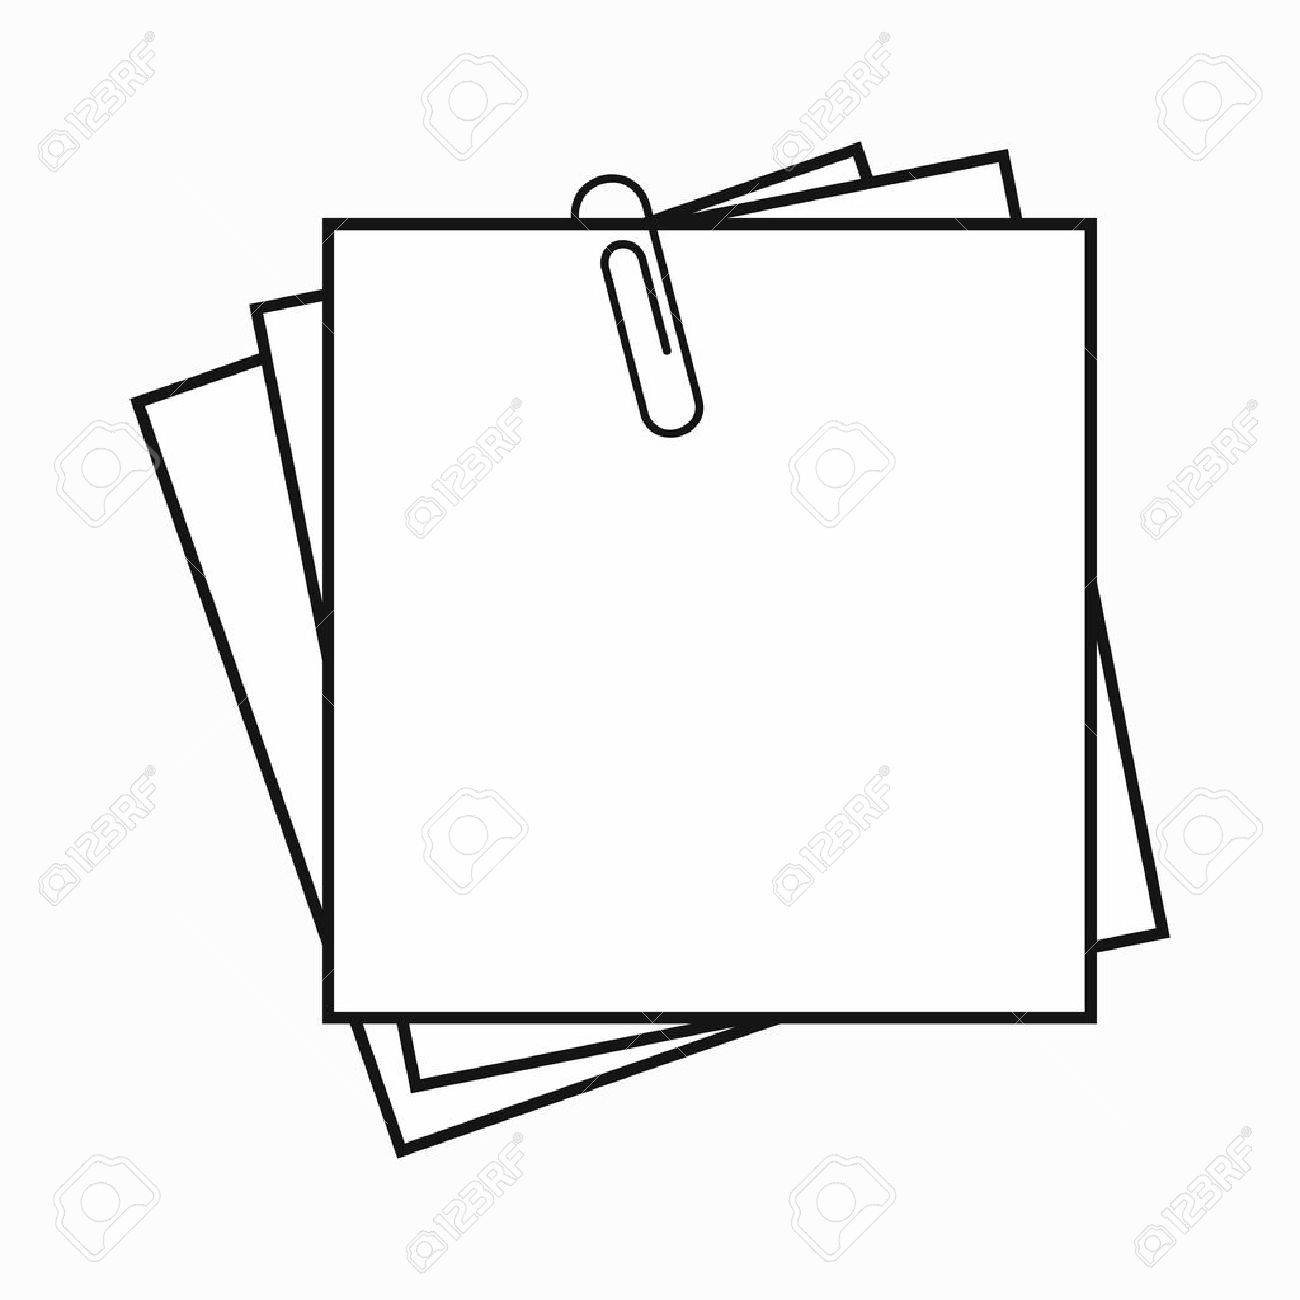 sheet of paper for notes and paper clip icon in simple style